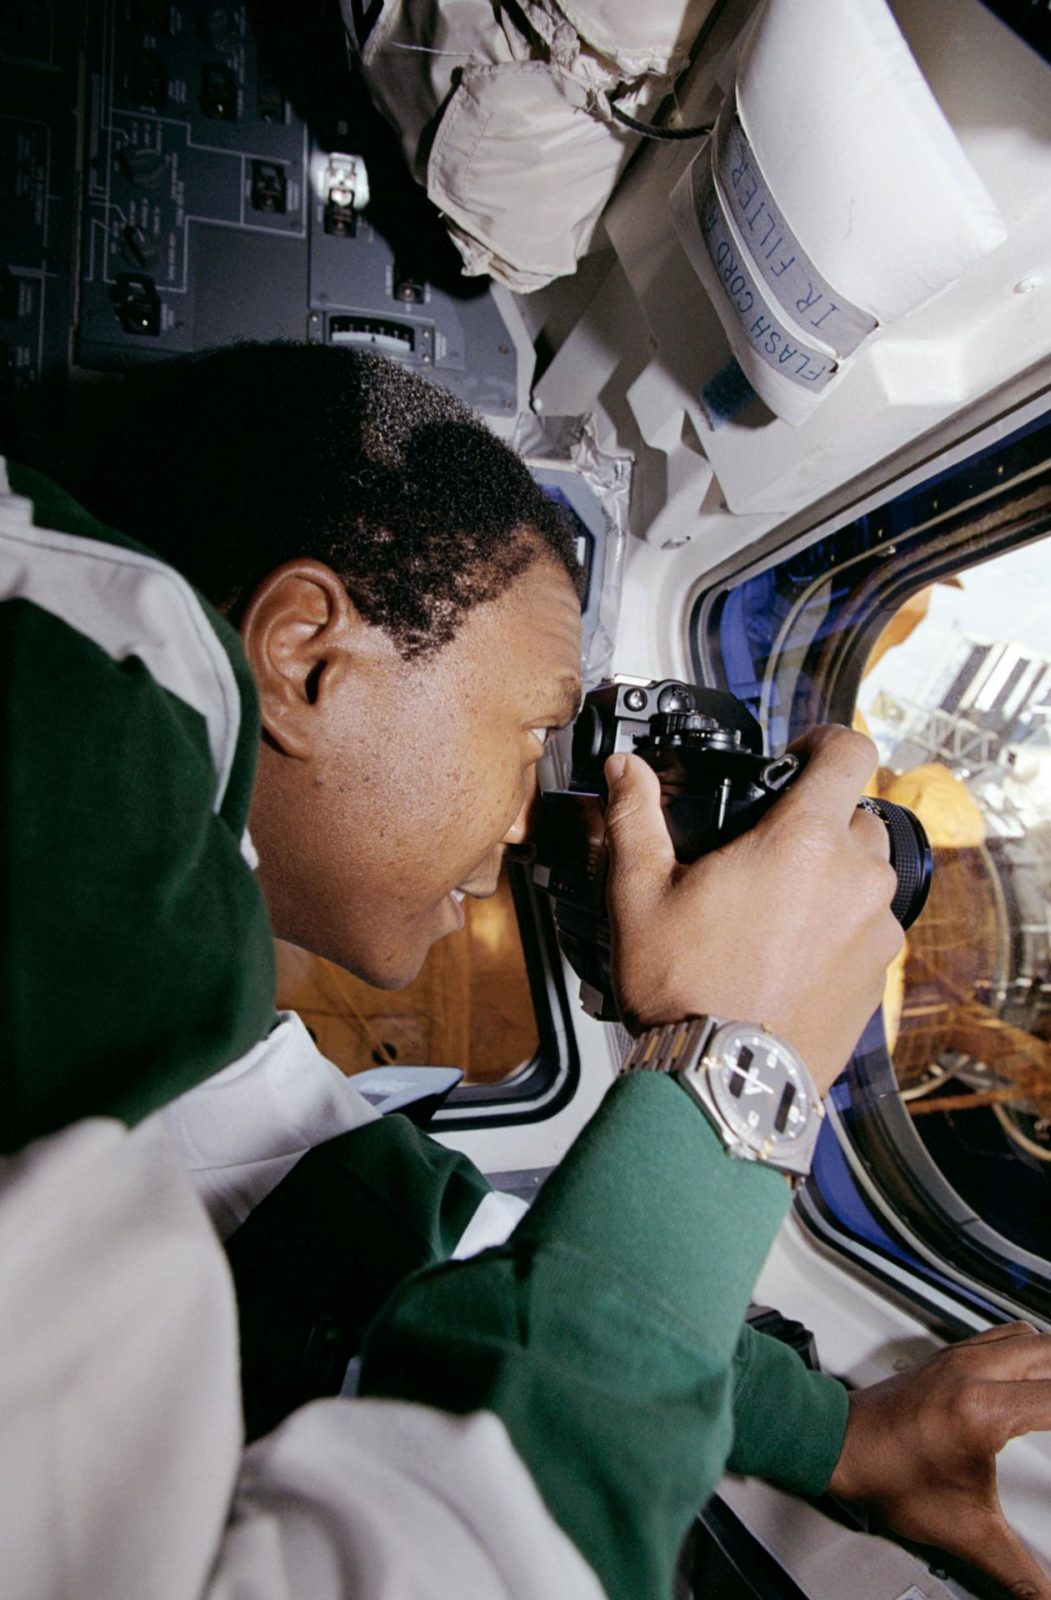 MS Anderson photographs the Mir Space Station